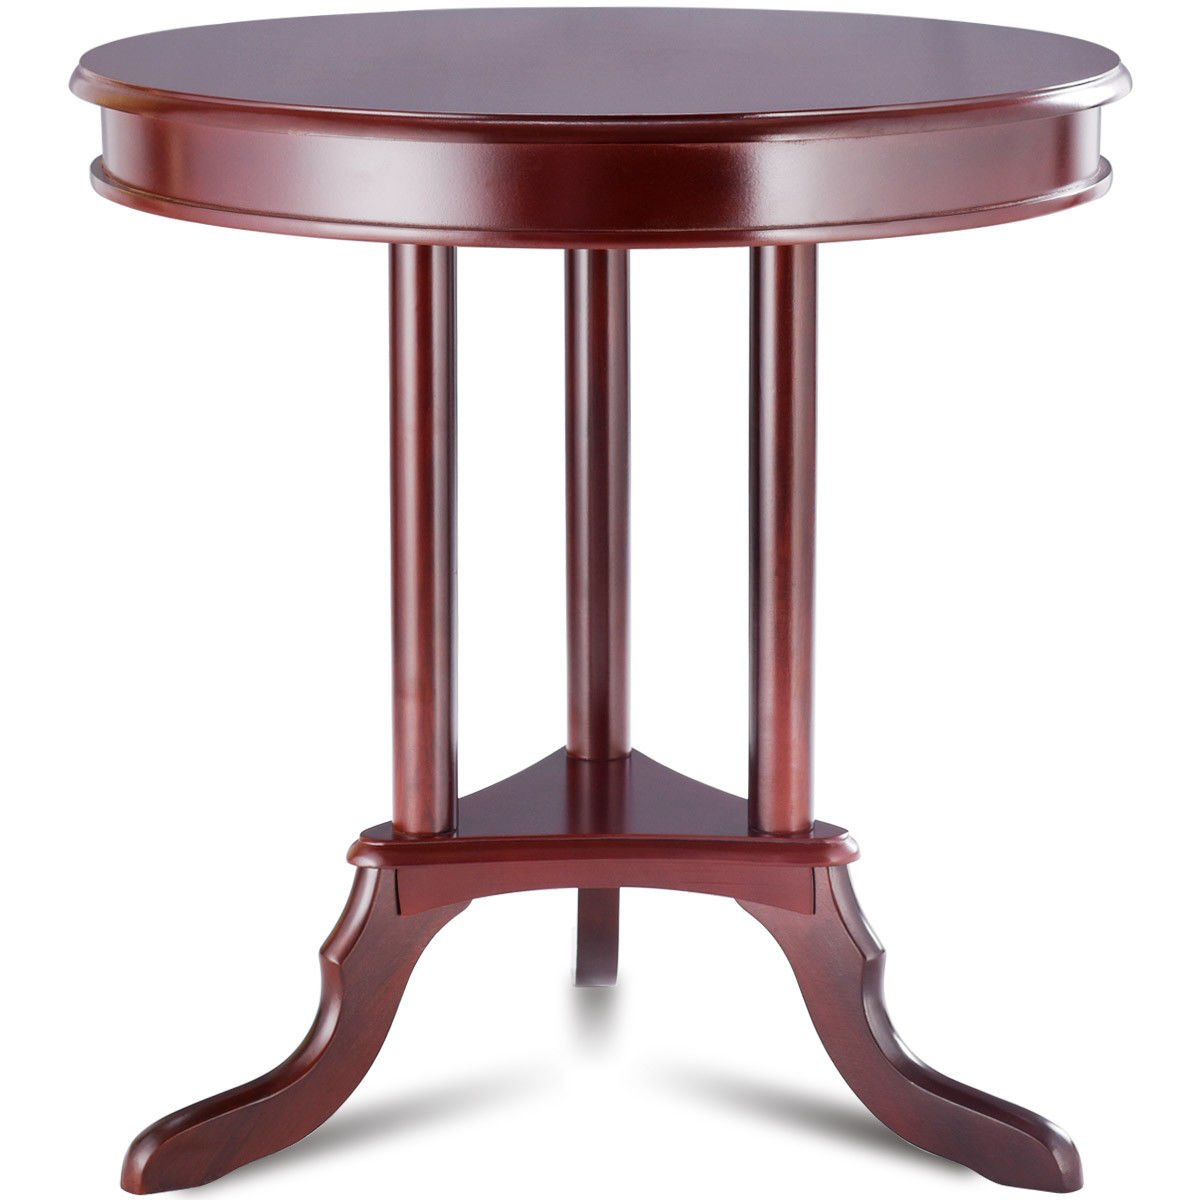 giantex round accent table end side home furnishing shelf slanted legs kitchen dining living room furniture console traditional tables extra tall lamps wood and glass vintage sofa